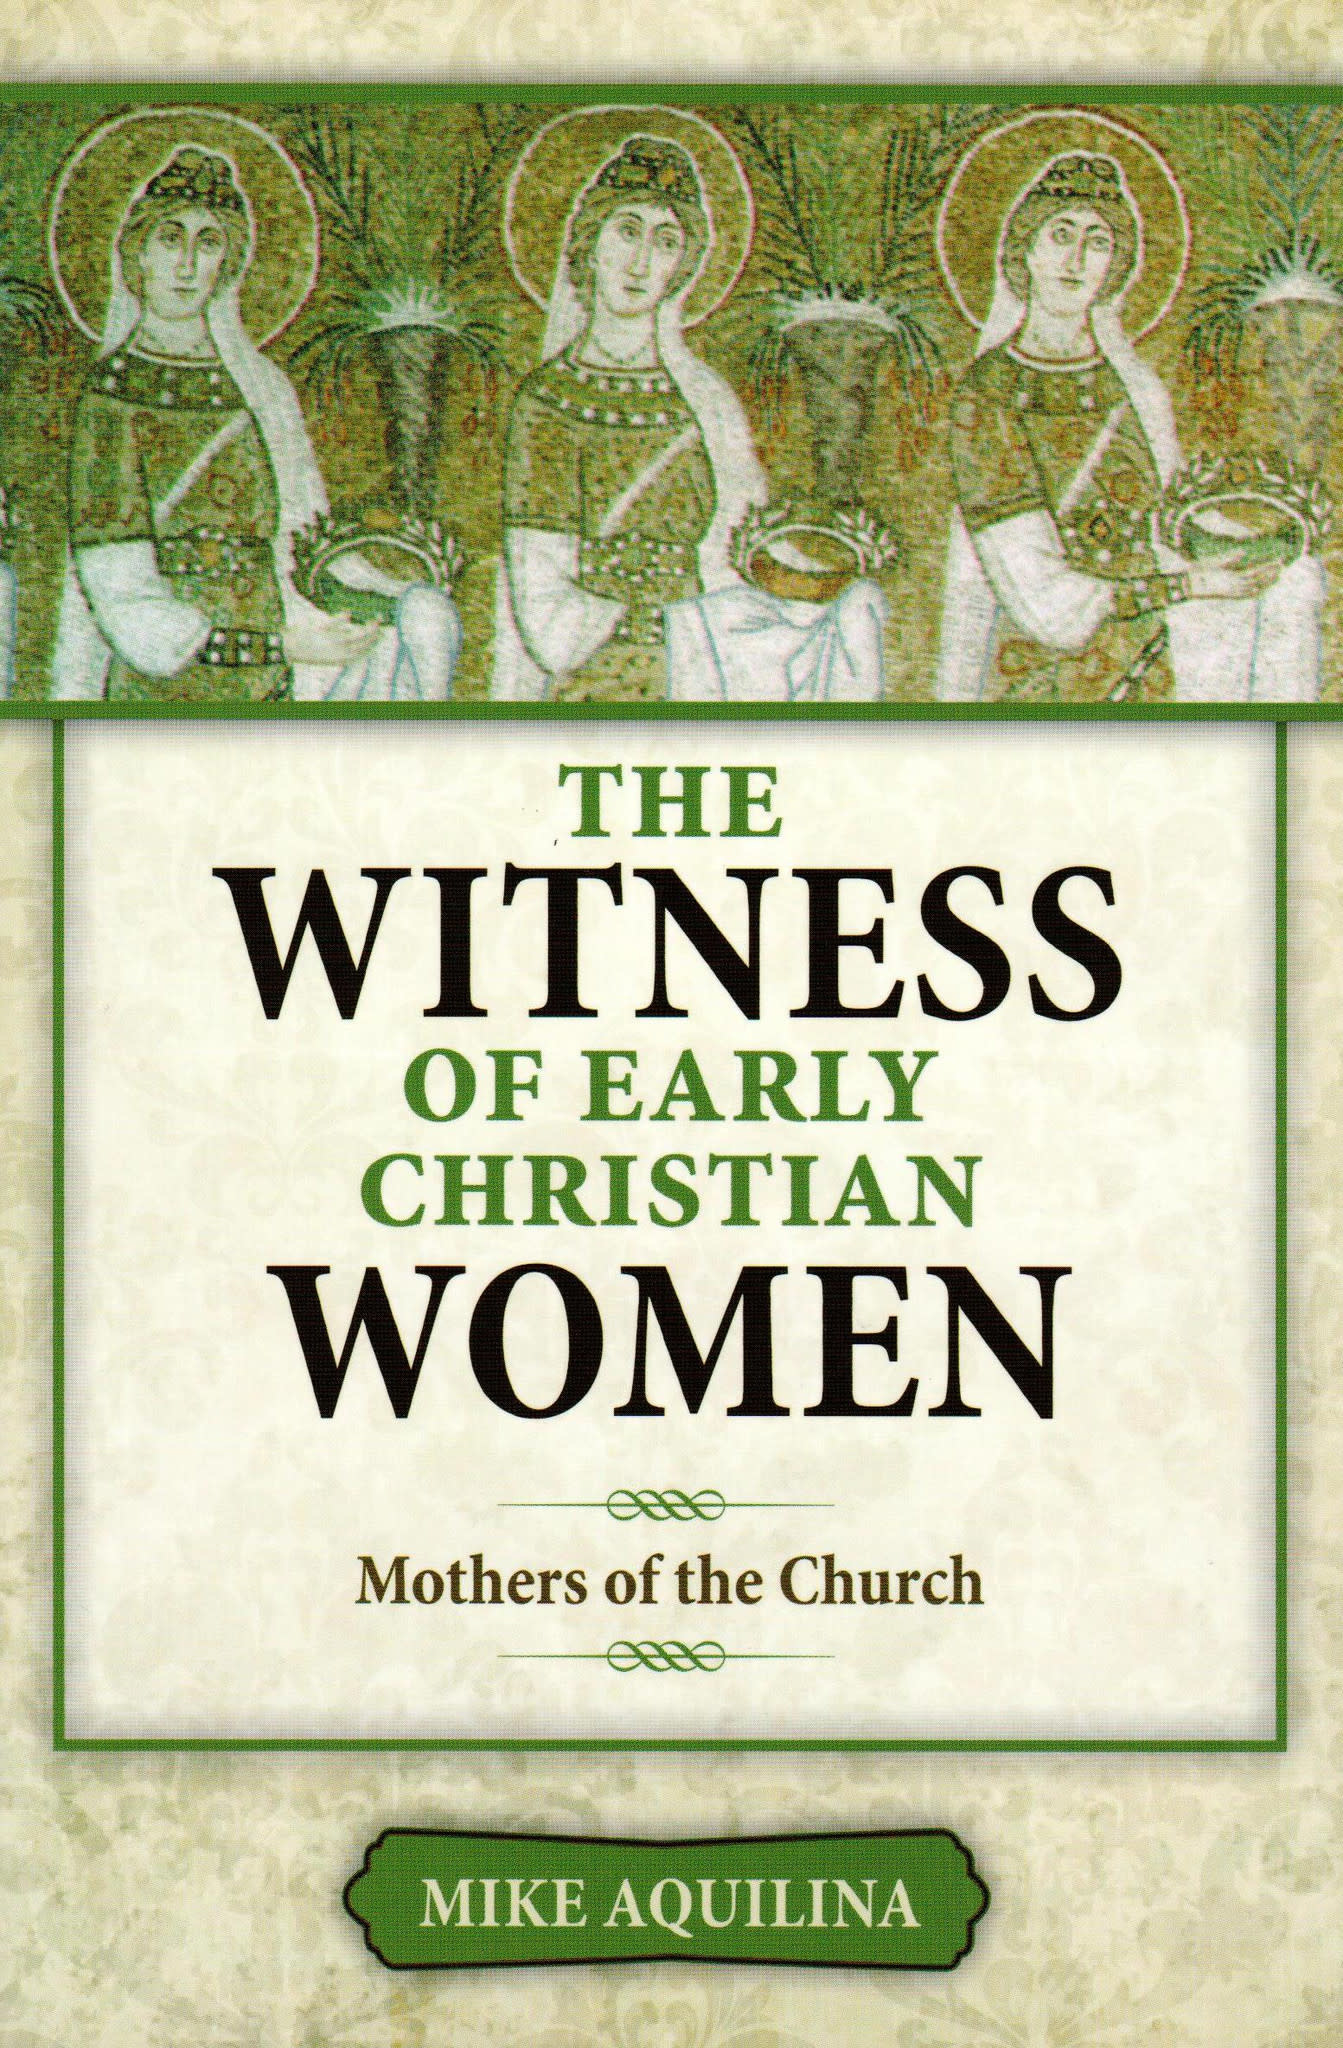 The Witness of Early Christian Women: Mothers of the Church